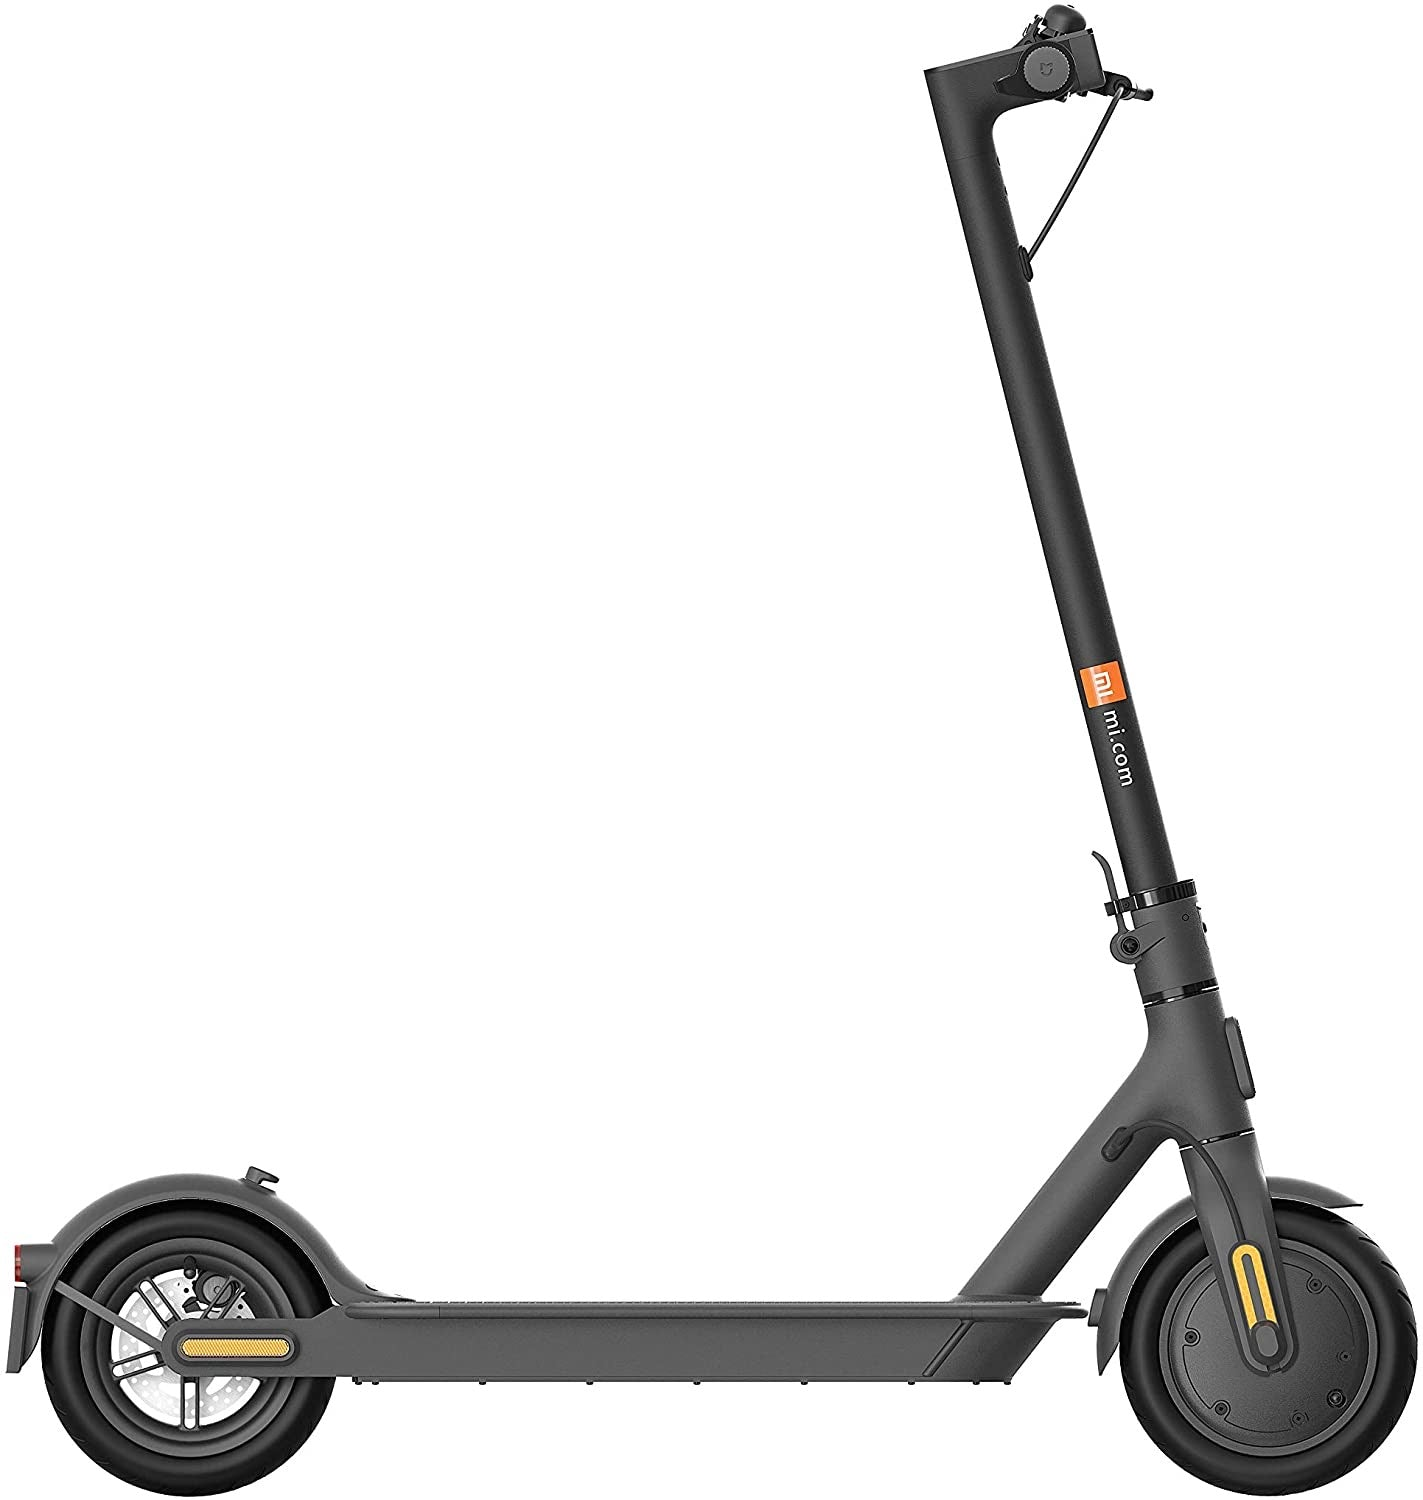 Xiaomi 1S Electric Scooter Profile Image